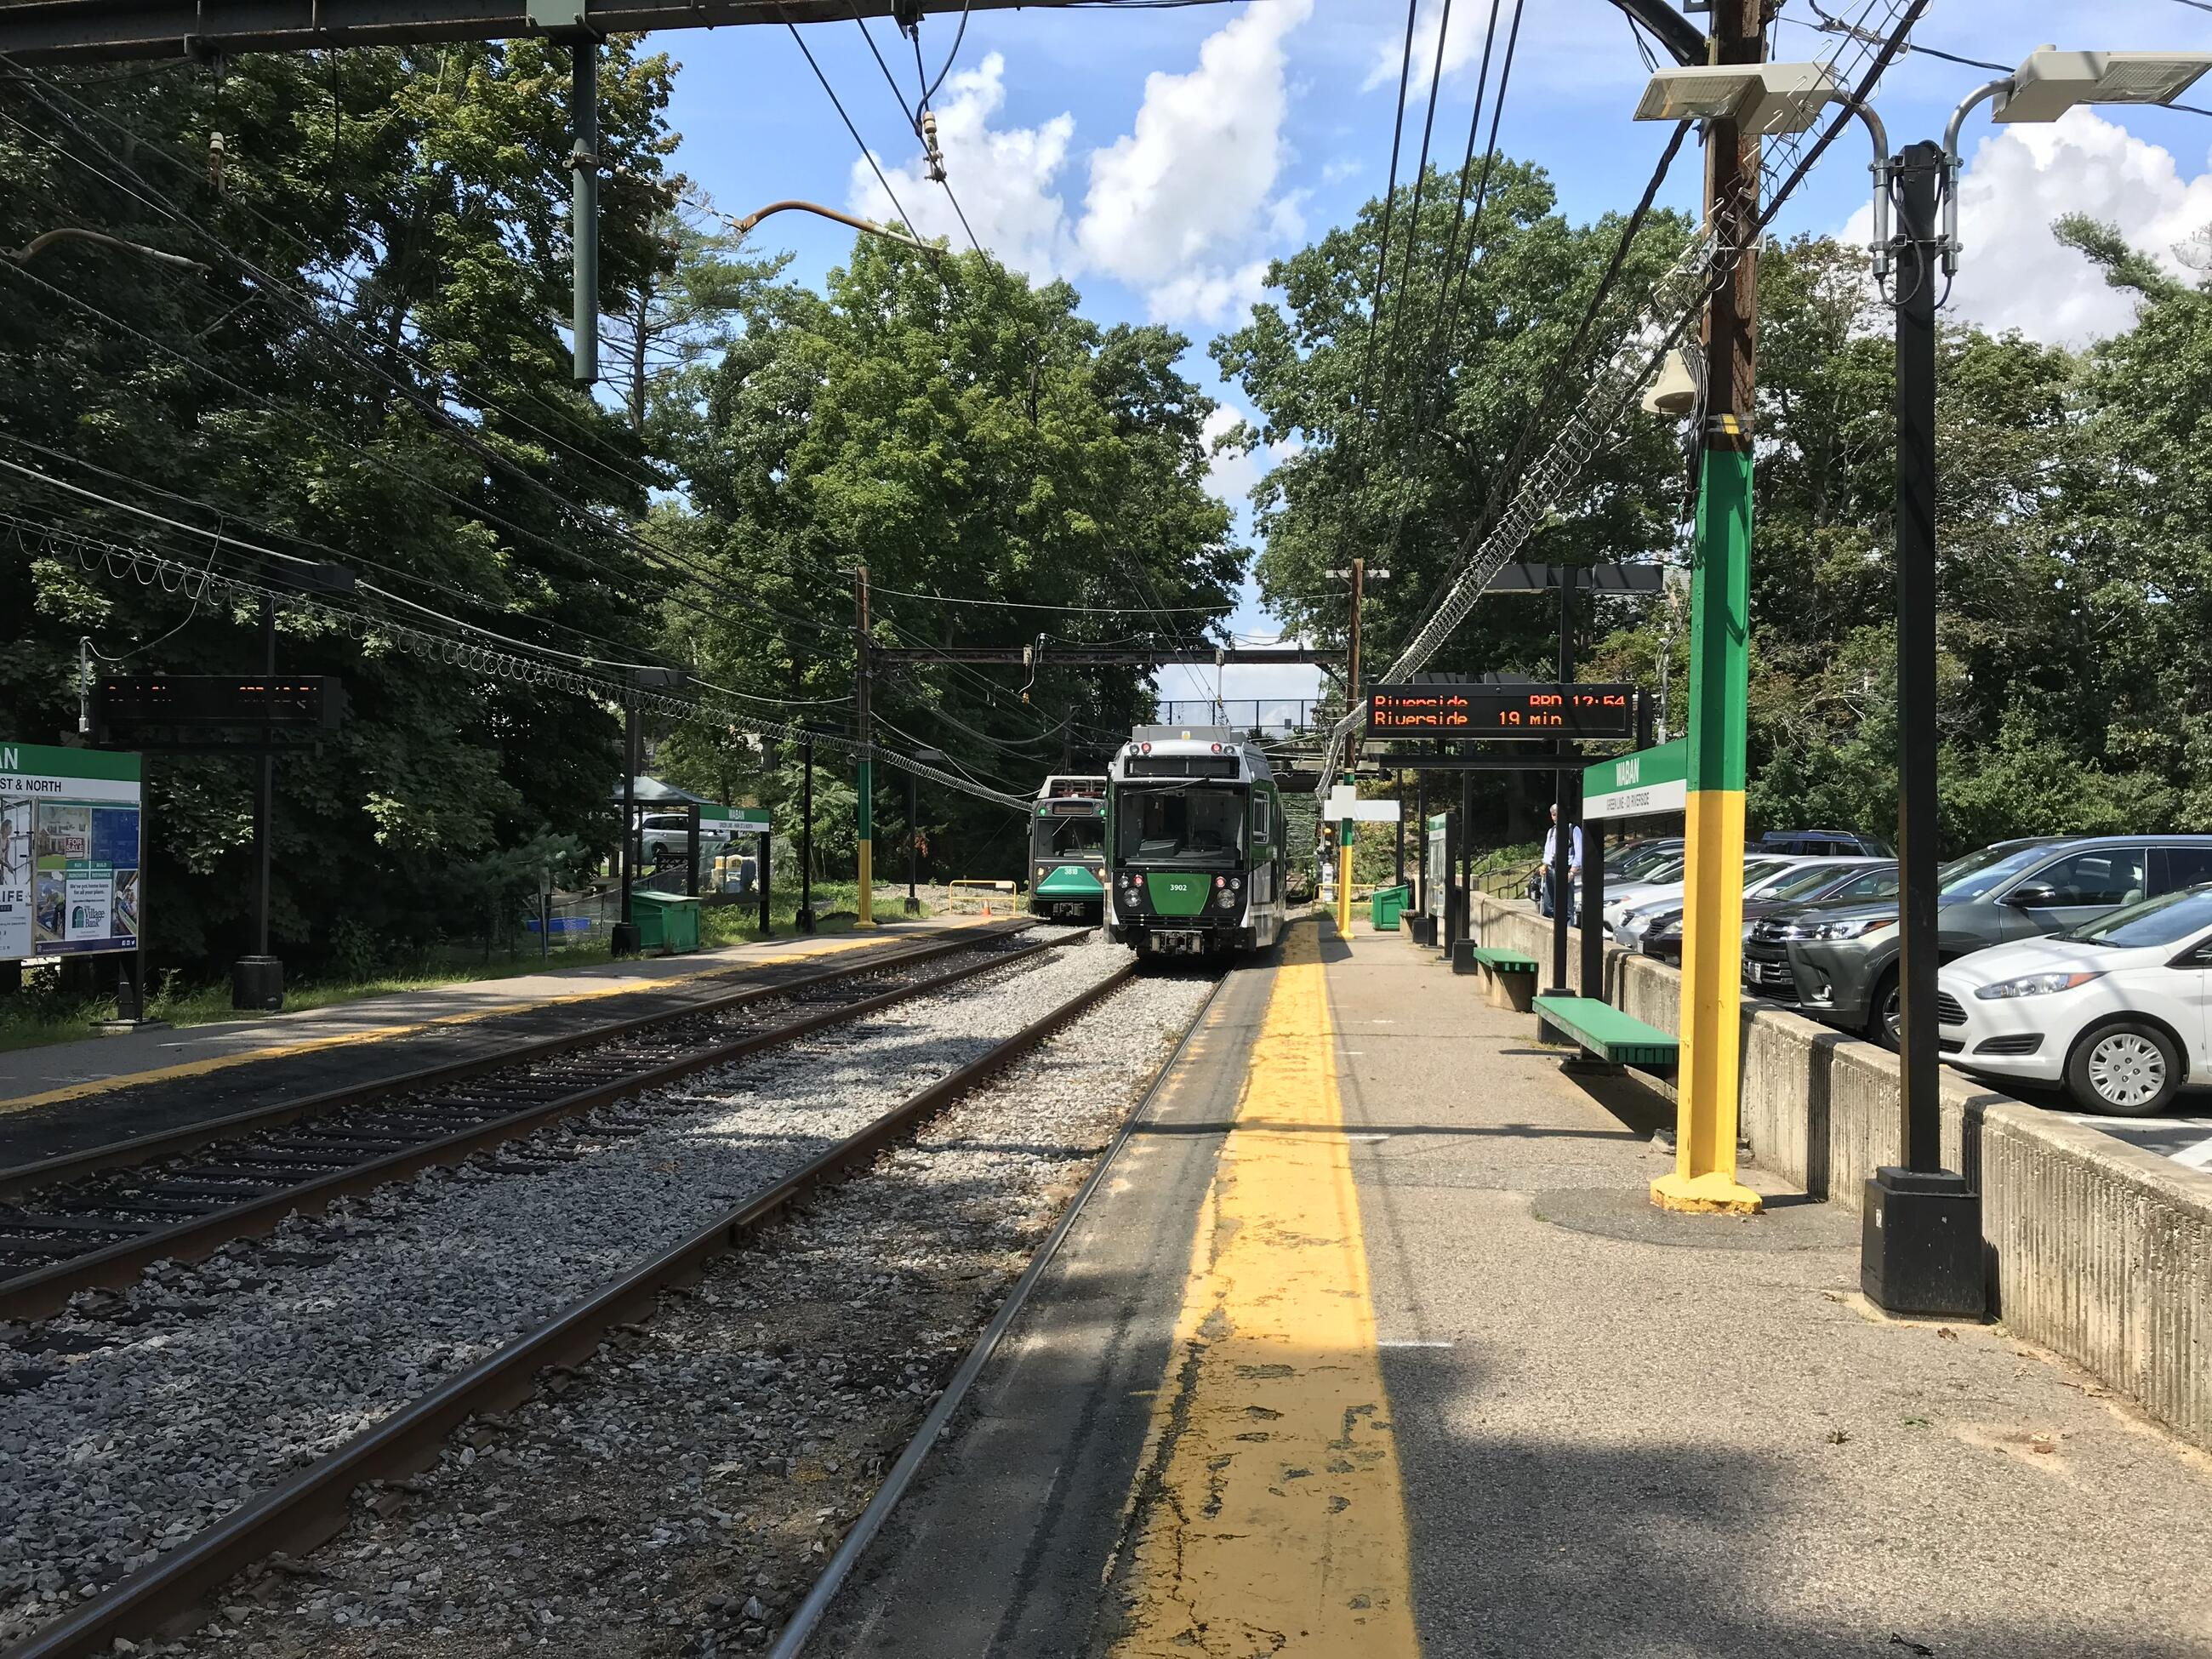 A Green Line train at the Waban station. The entire platform and tracks are visible